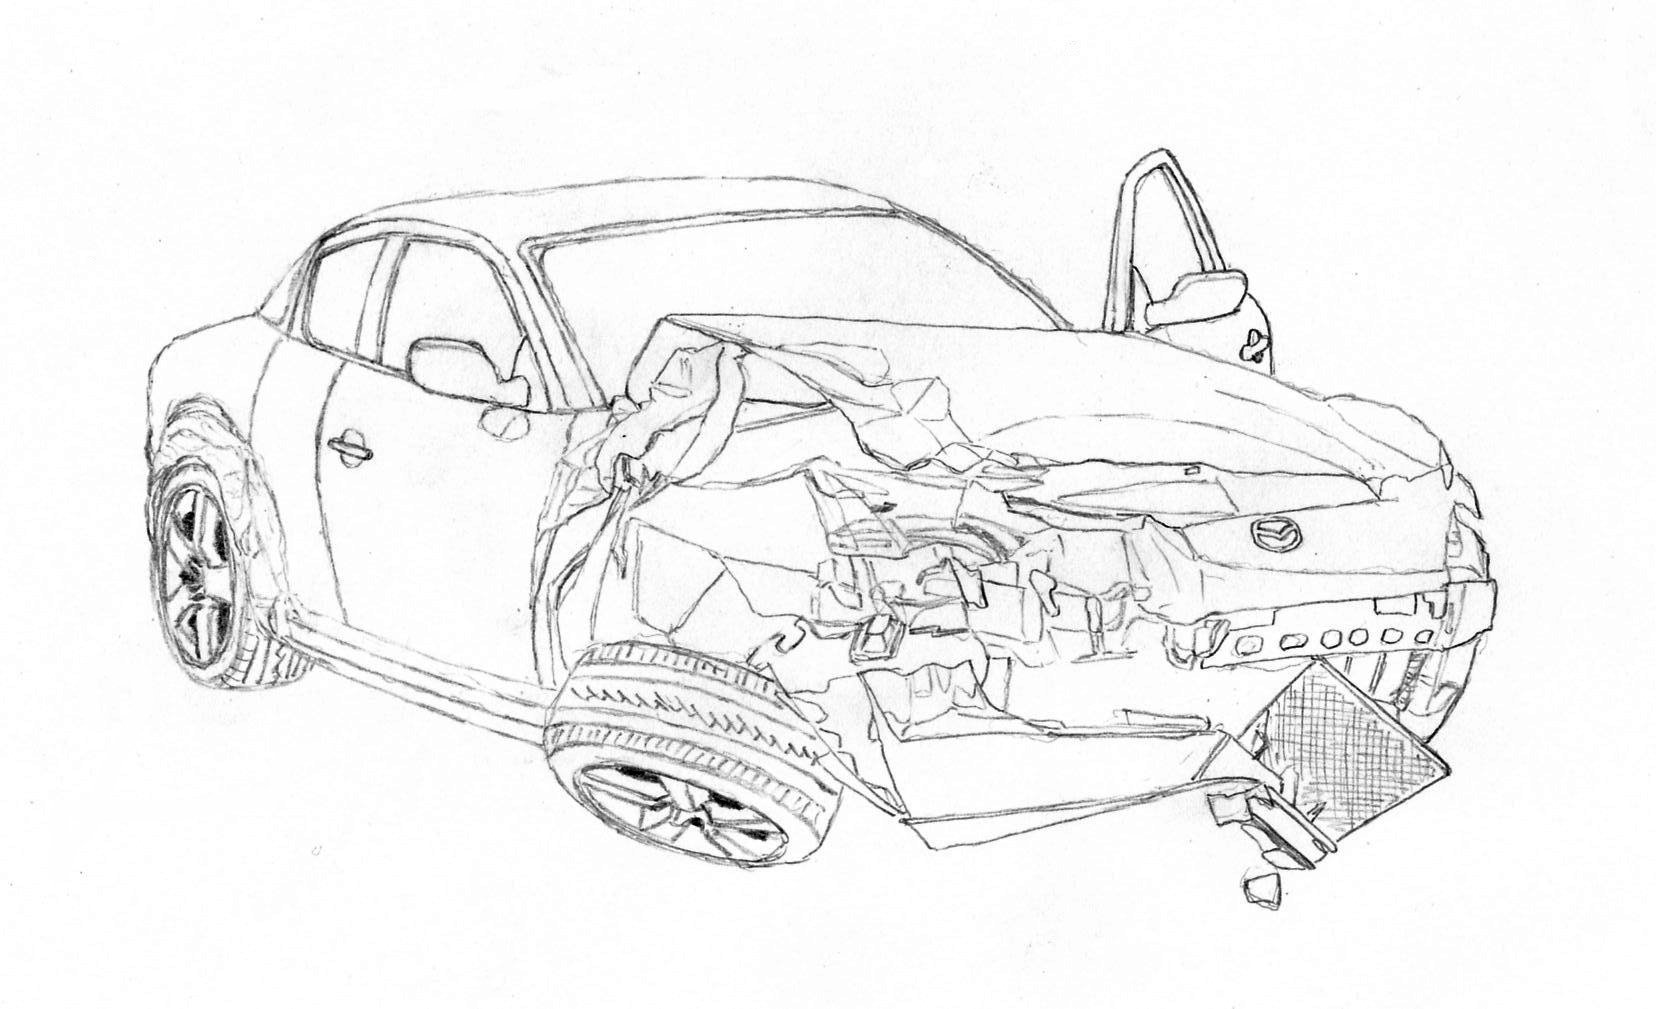 Car Accident Drawing besides Bad driving further Cartoon Car Crashes Pictures moreover Texas Traffic Accident Diagram Form furthermore CH26. on collision car crash